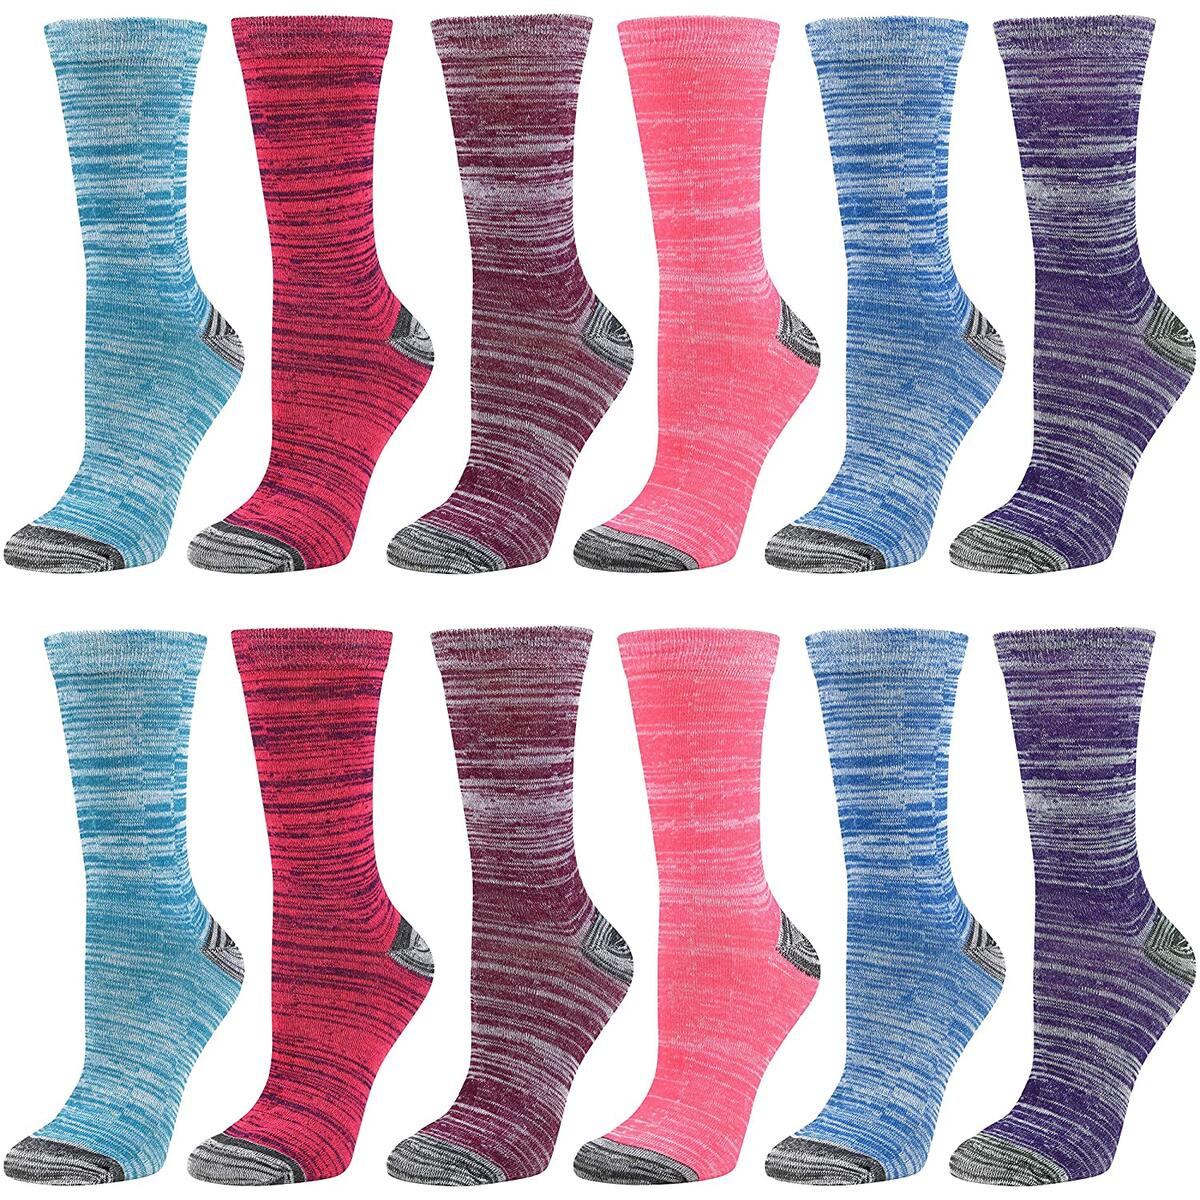 12 Pairs Women's Colorful Crew argyle Socks Cotton Casual Patterned Fun Socks for Girls Debra Weitzner Color Tie Die